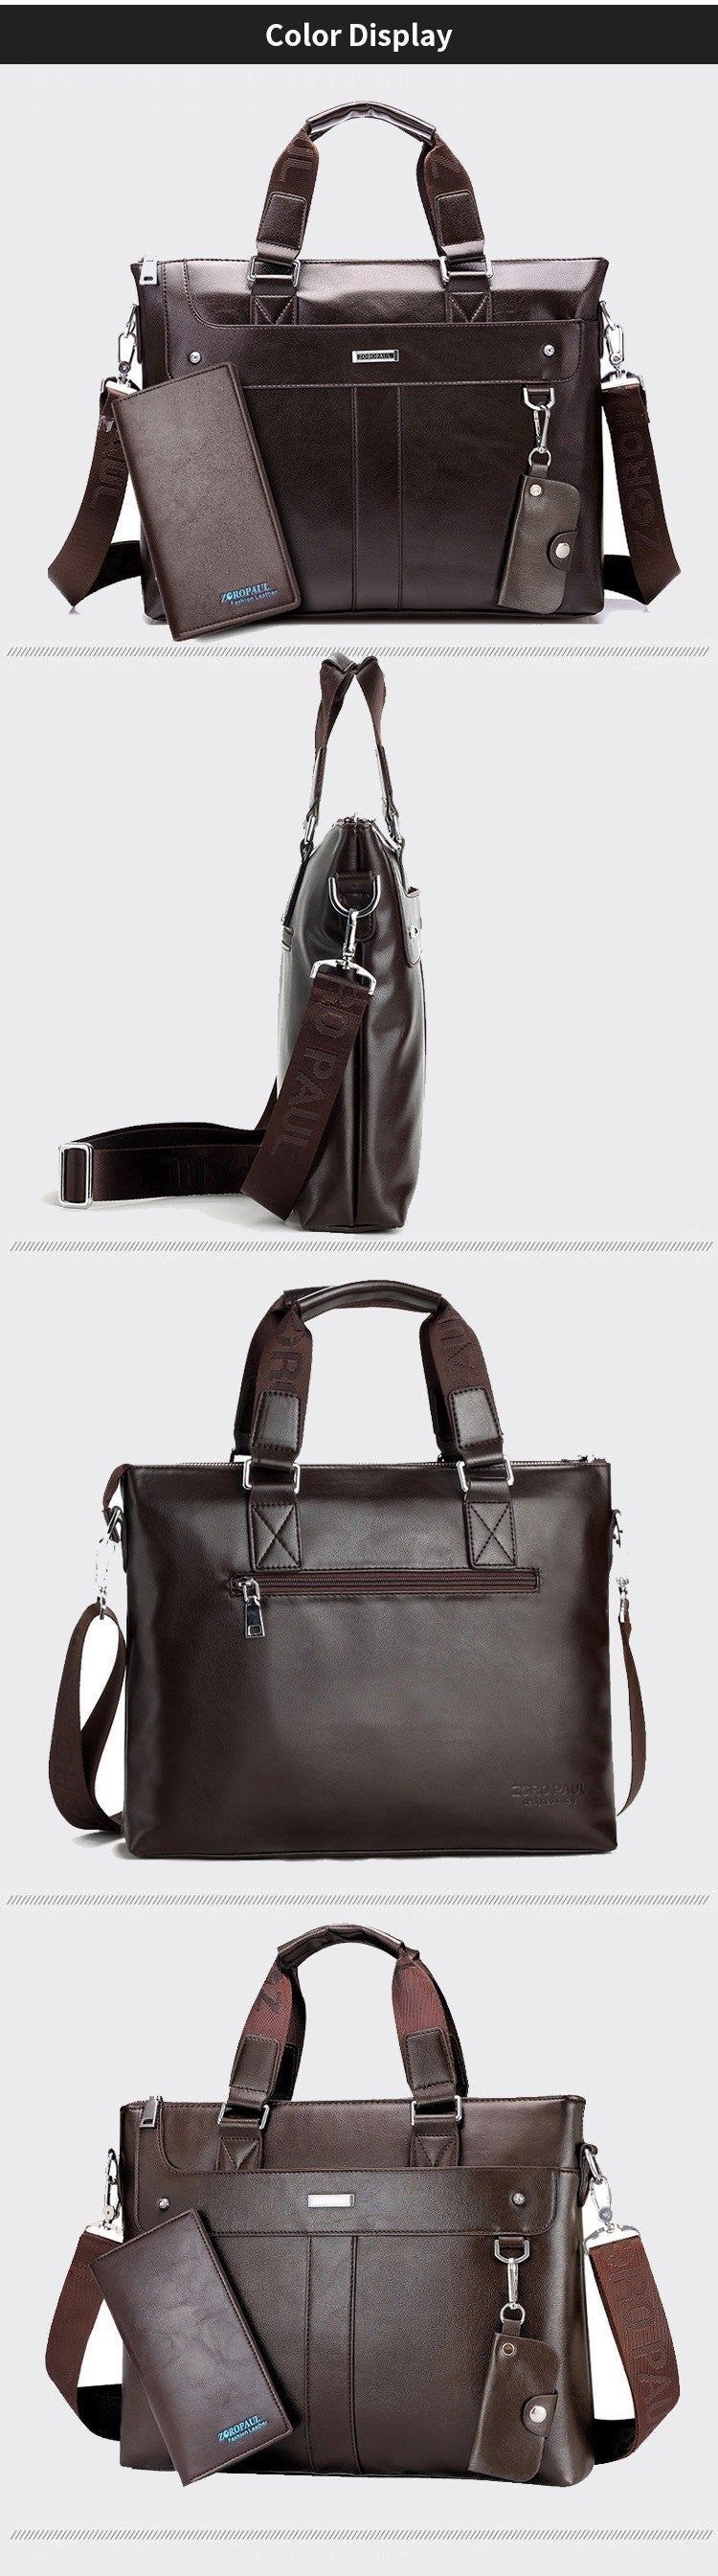 Mens Leather Business Carrier - URBAN LEGEND LEATHER